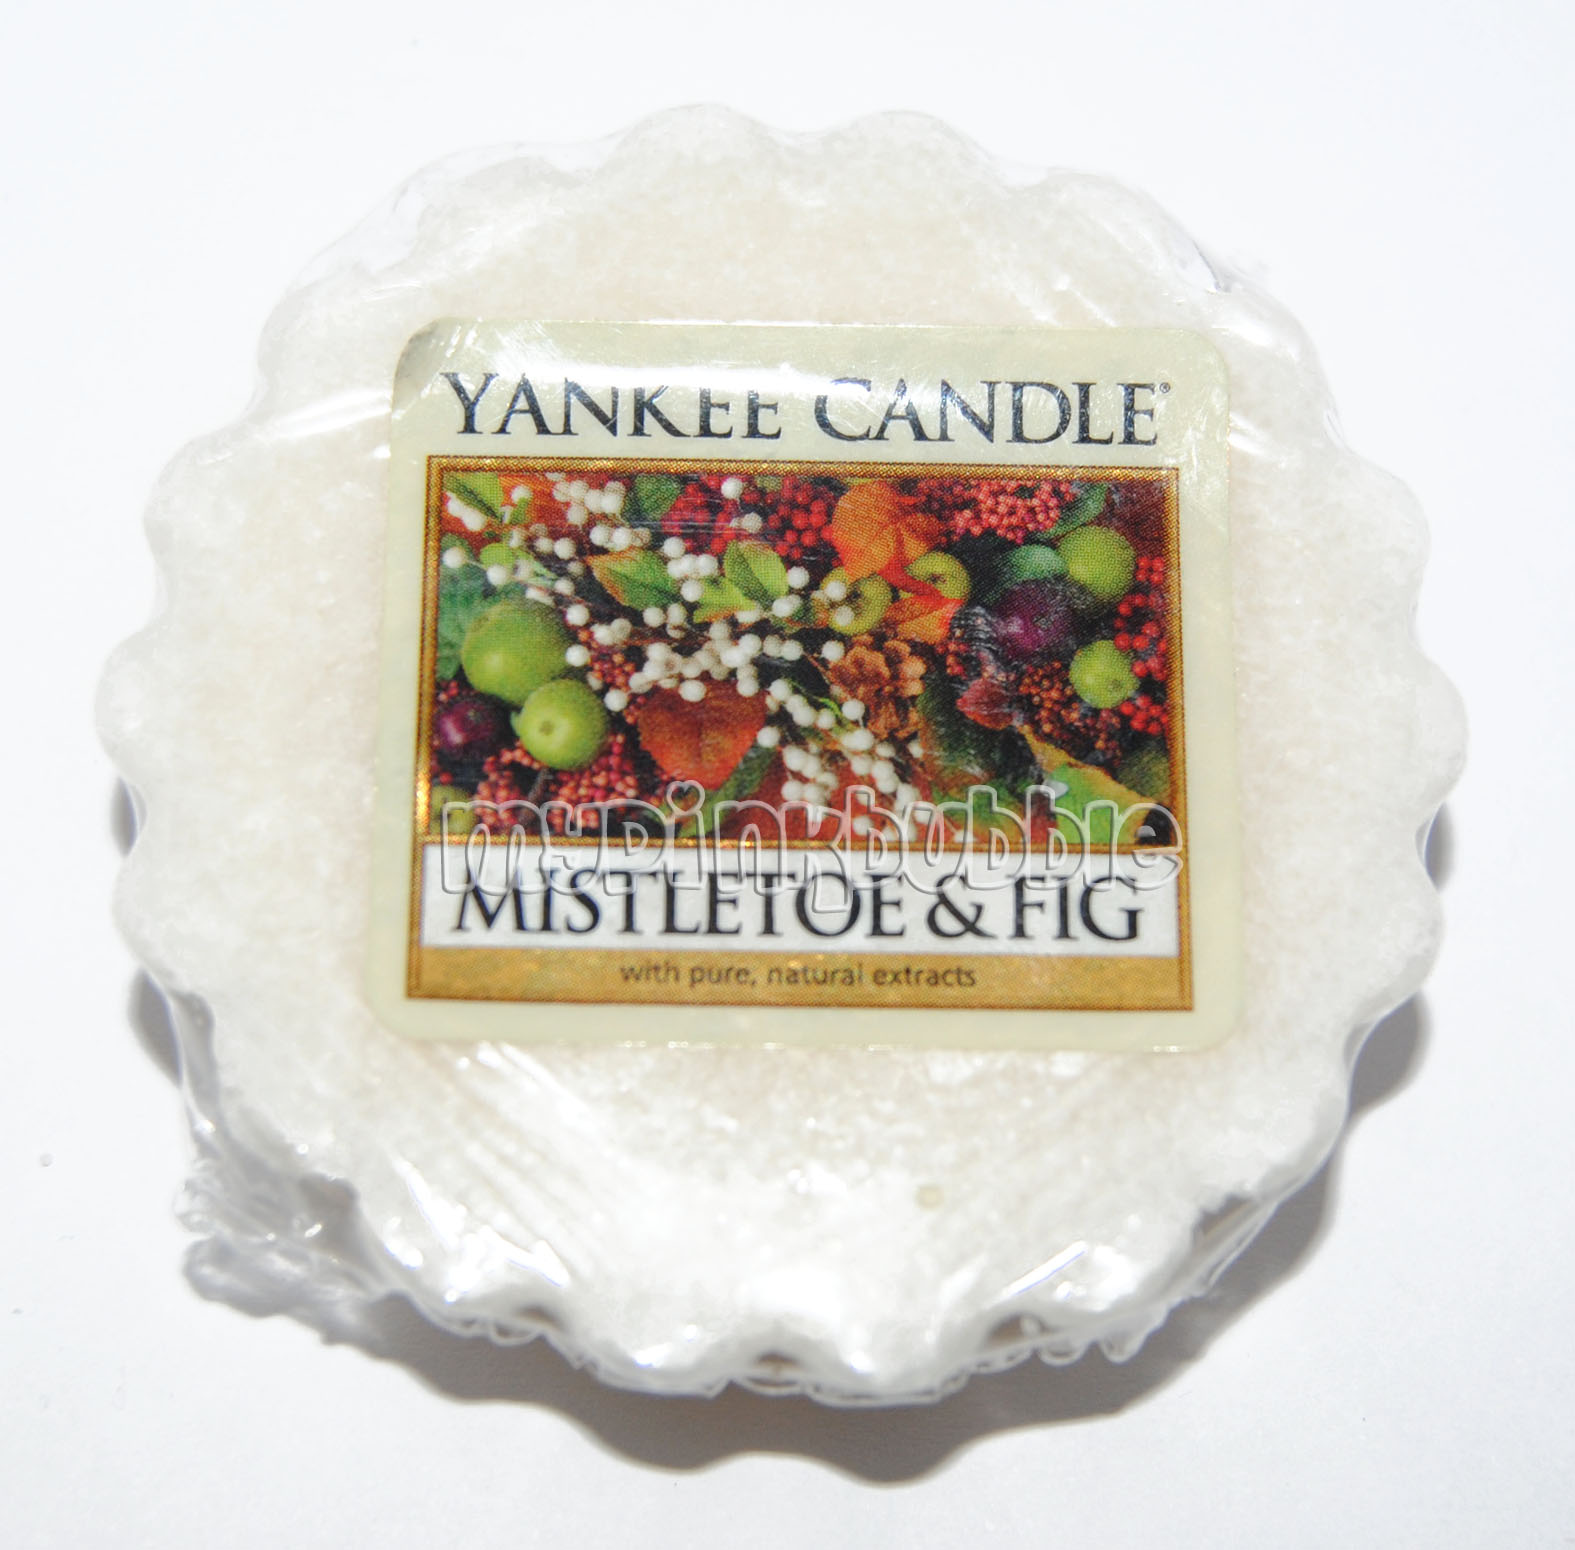 Yankee Candle Mistletoe & Fig